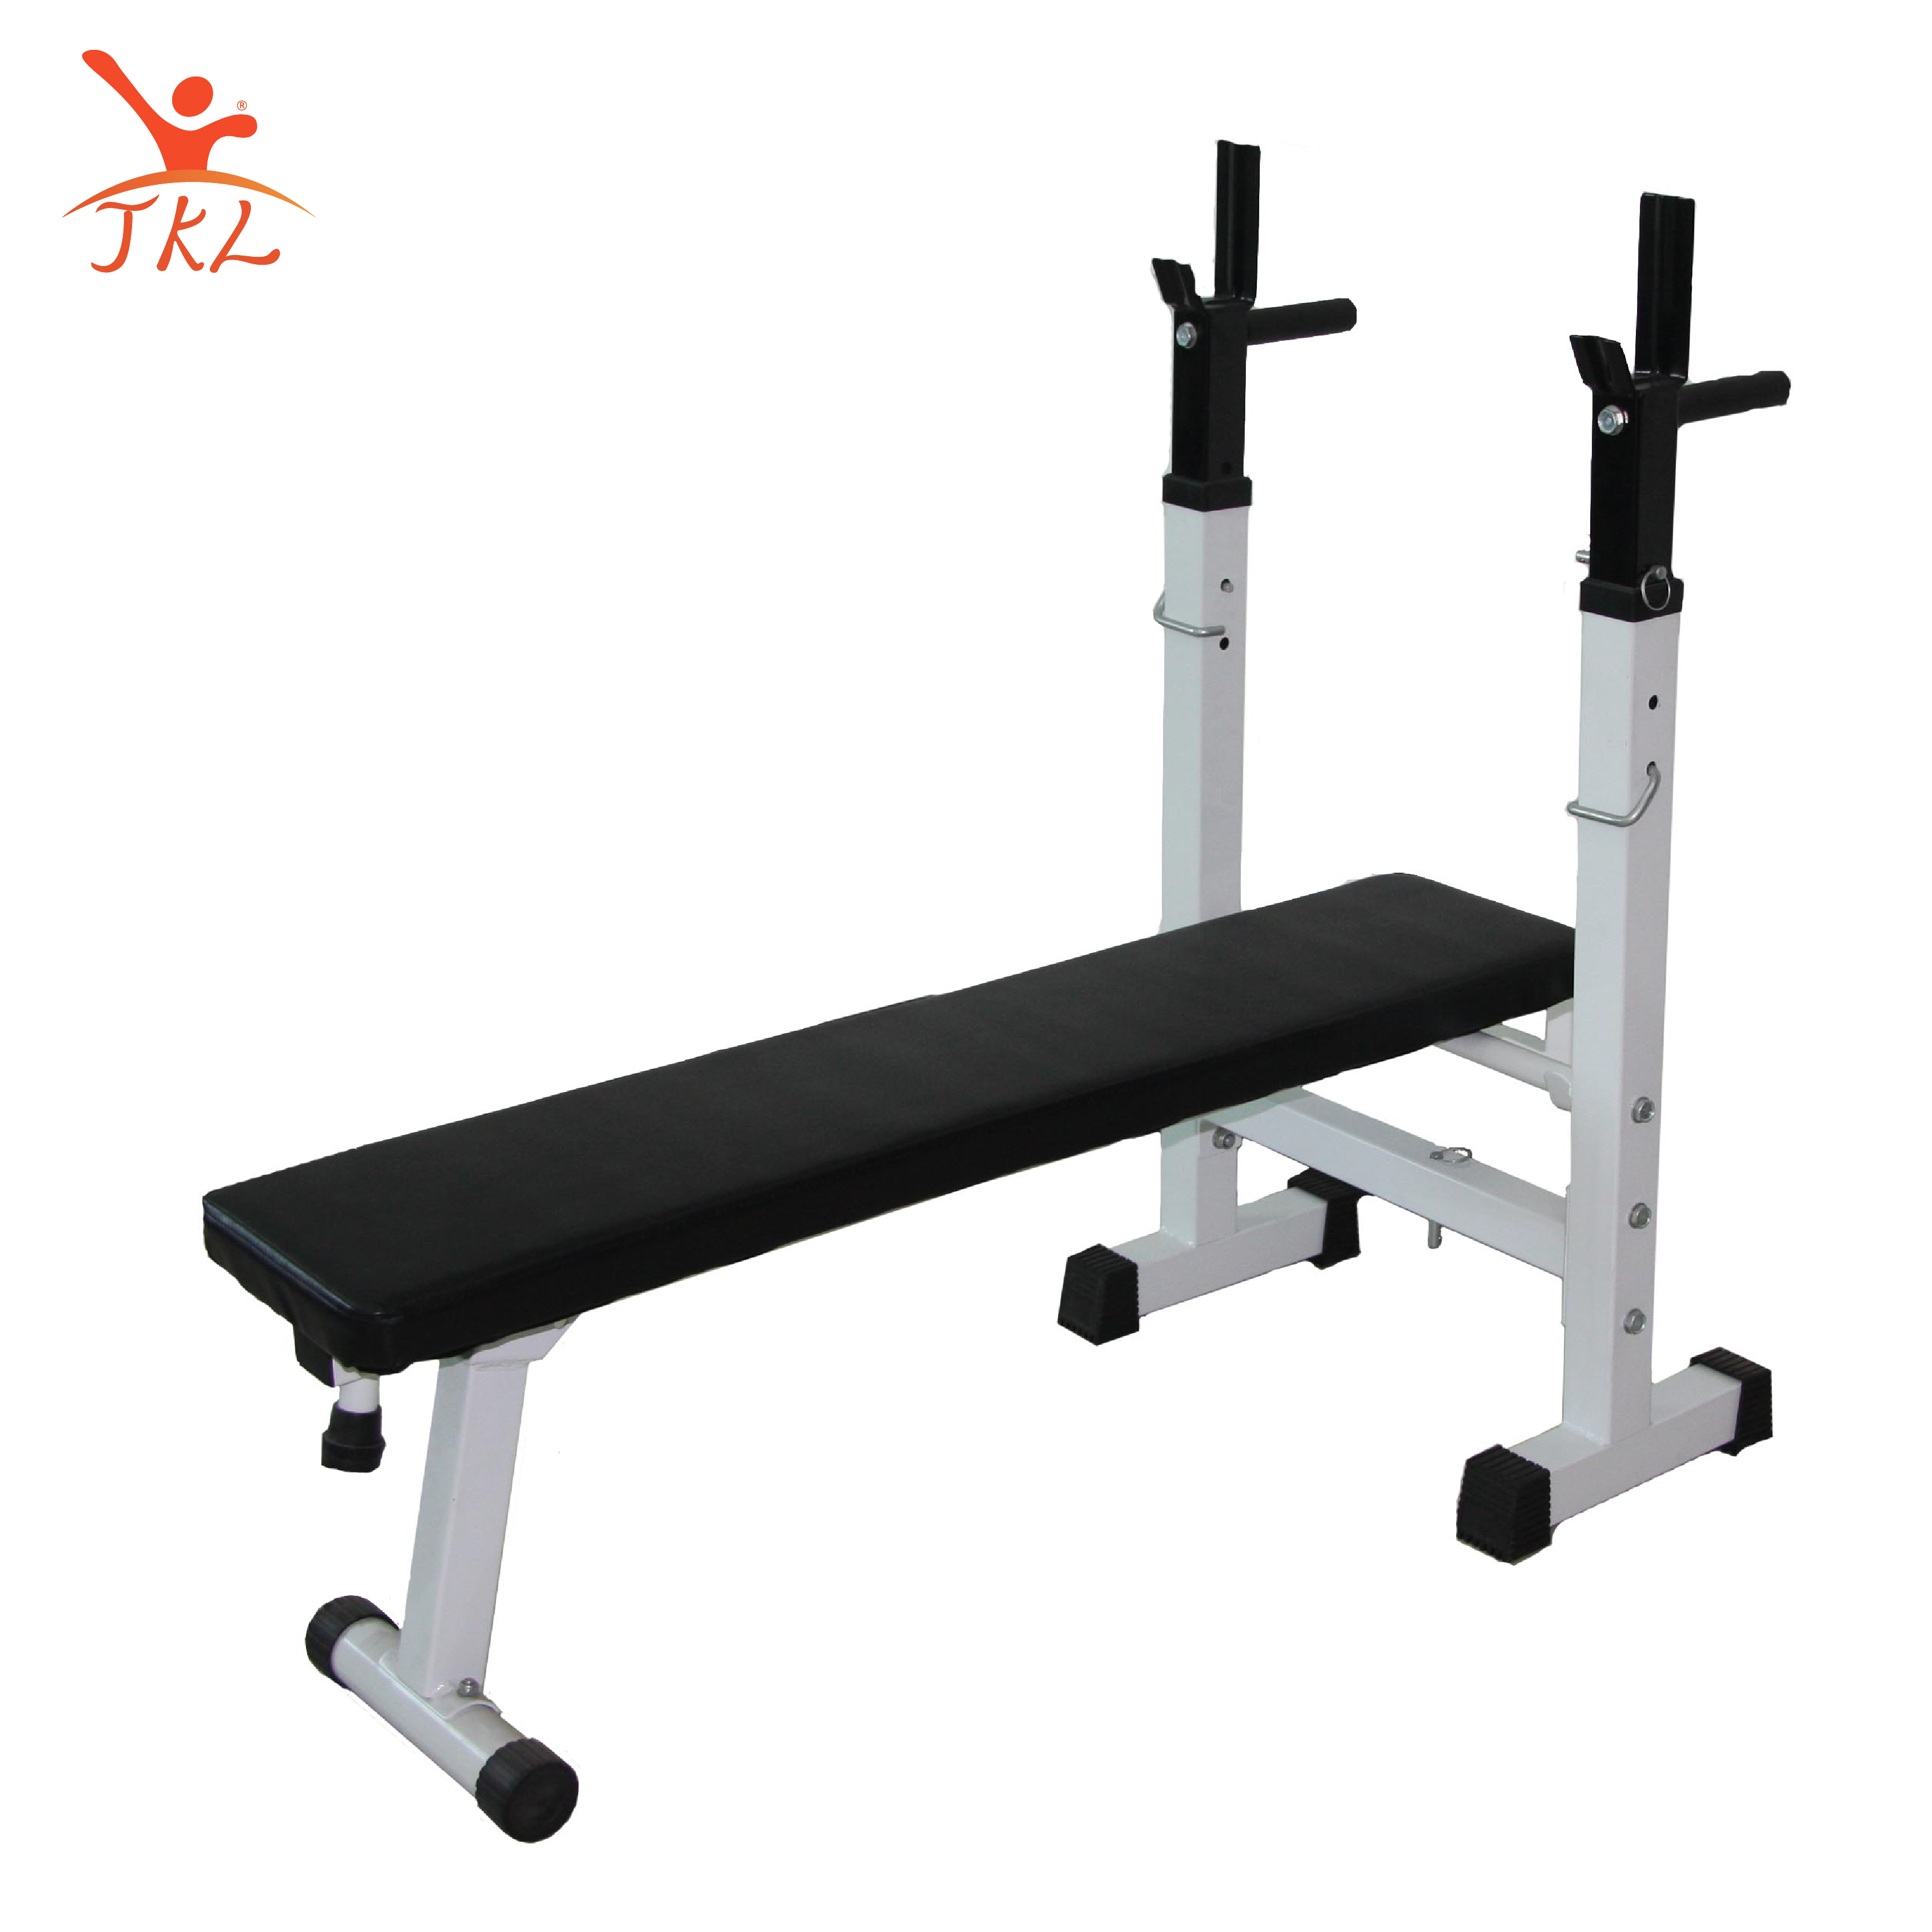 Household multifunctional folding supine board Weightlifting bed Bench press Parallel bar fitness equipment